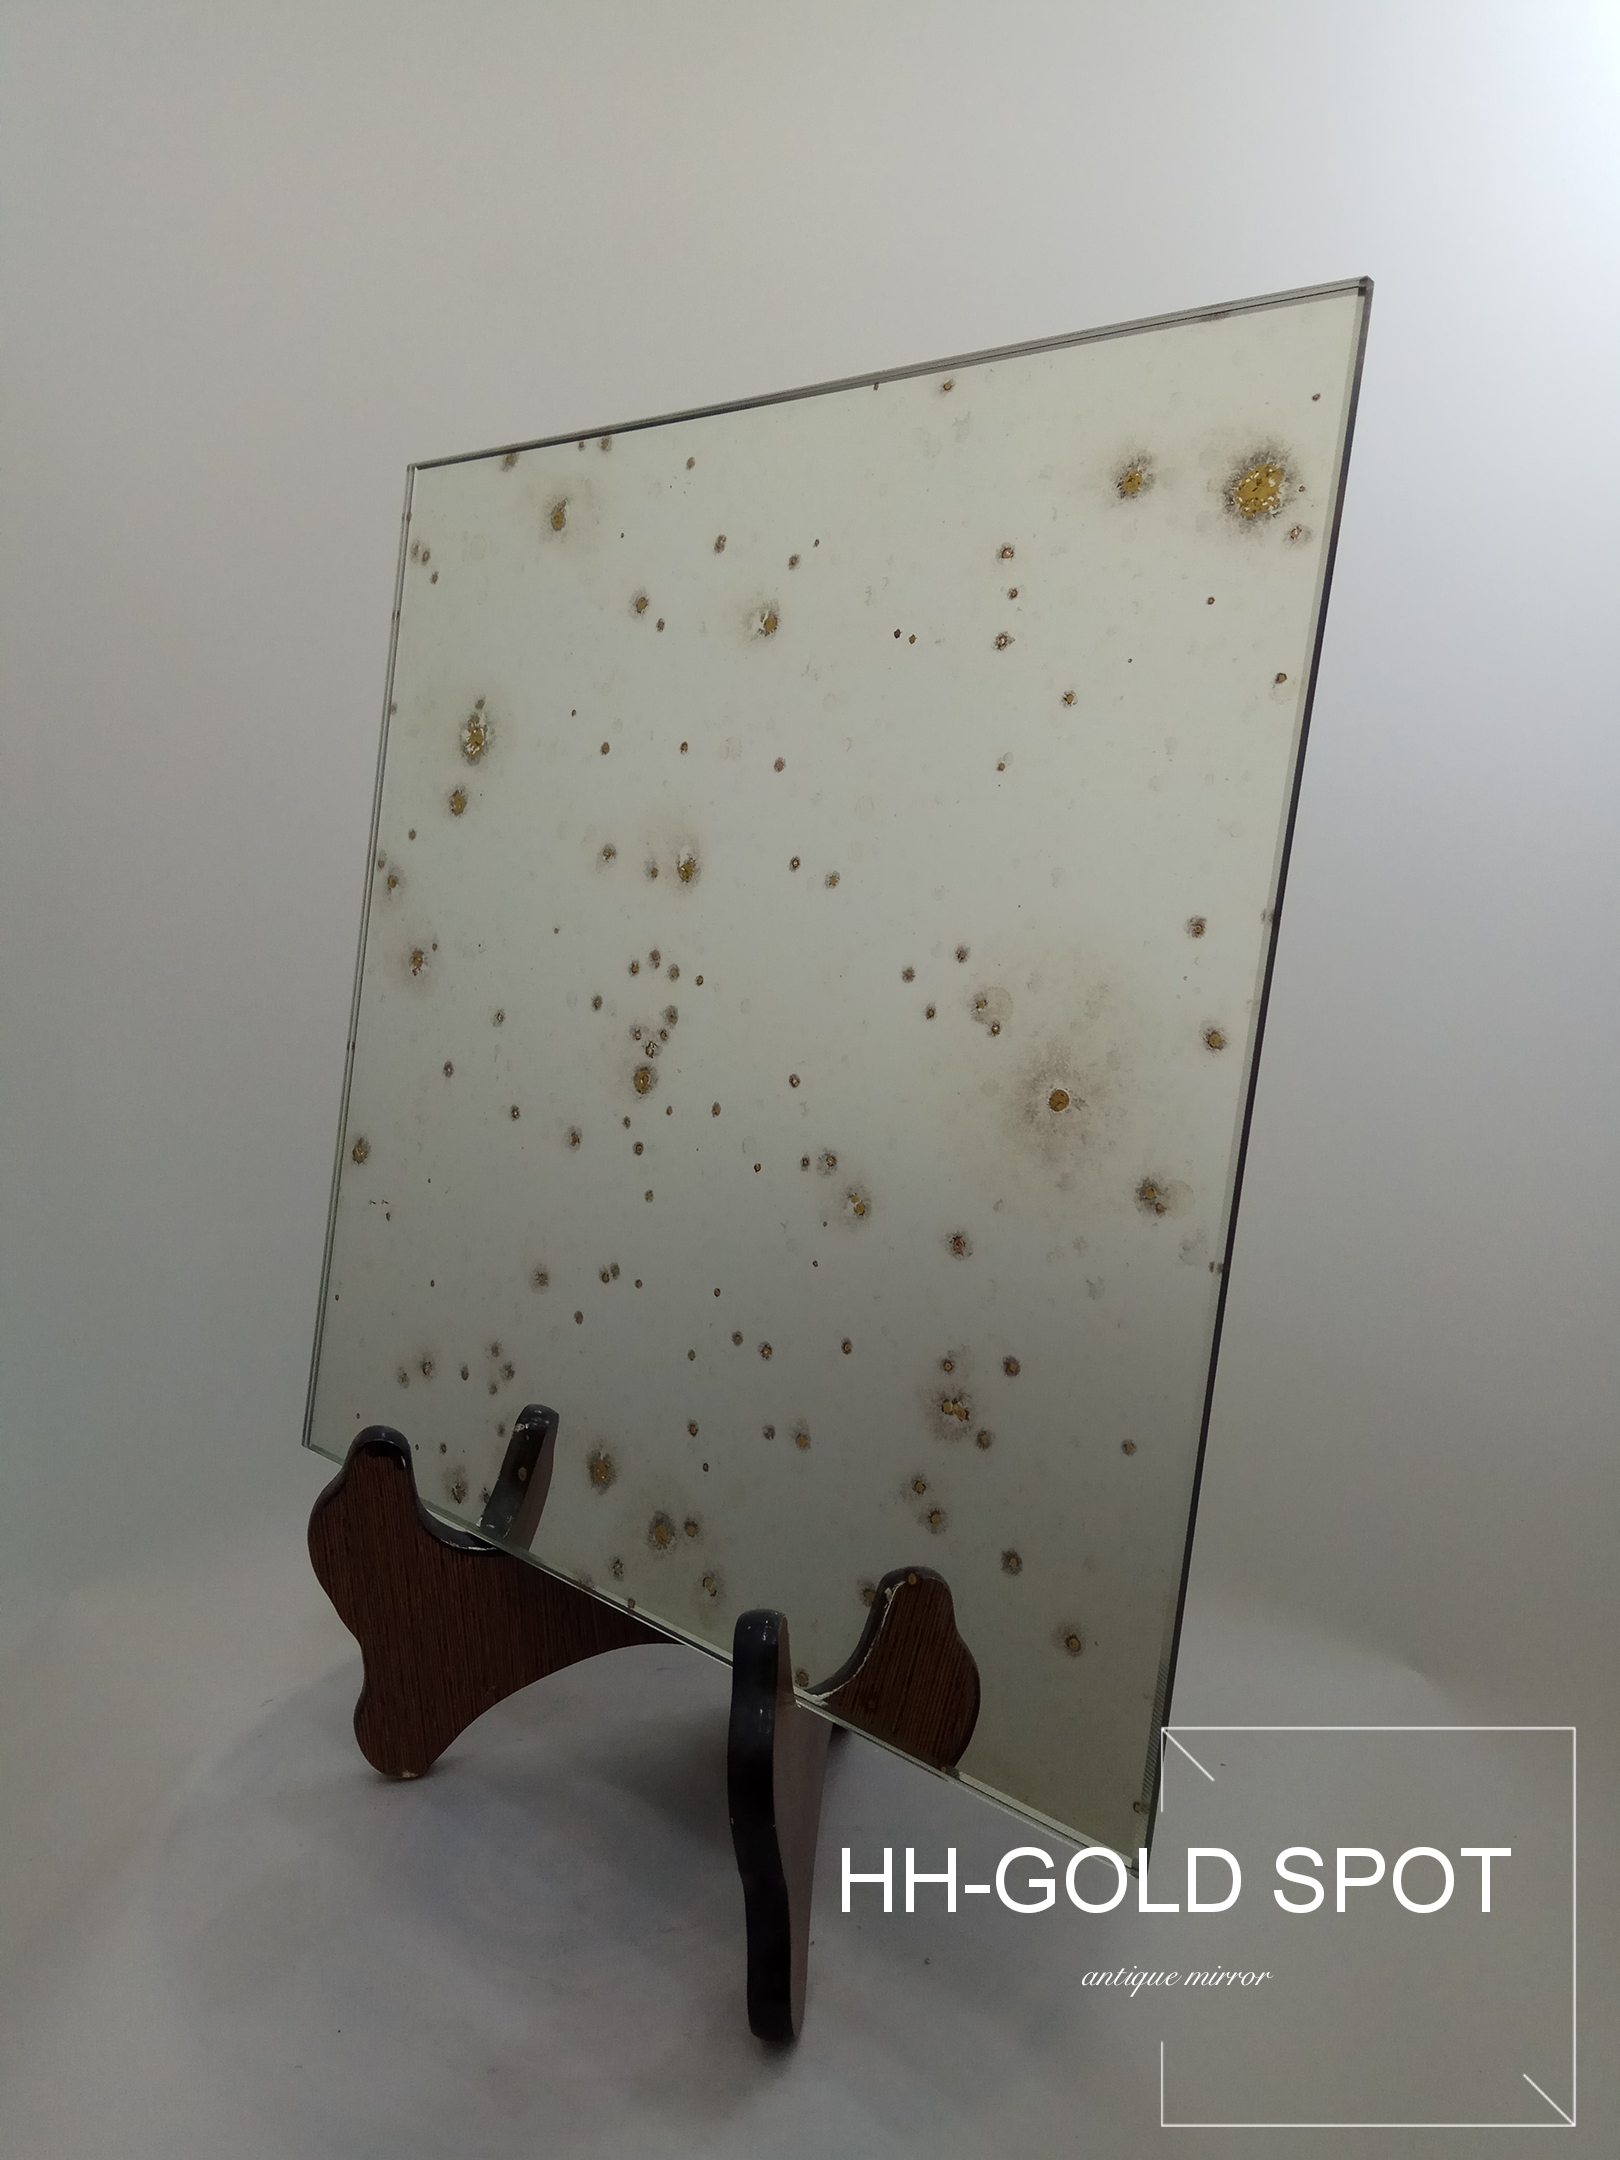 HH-Golden Spot Antique Mirror/ Decorative Mirror